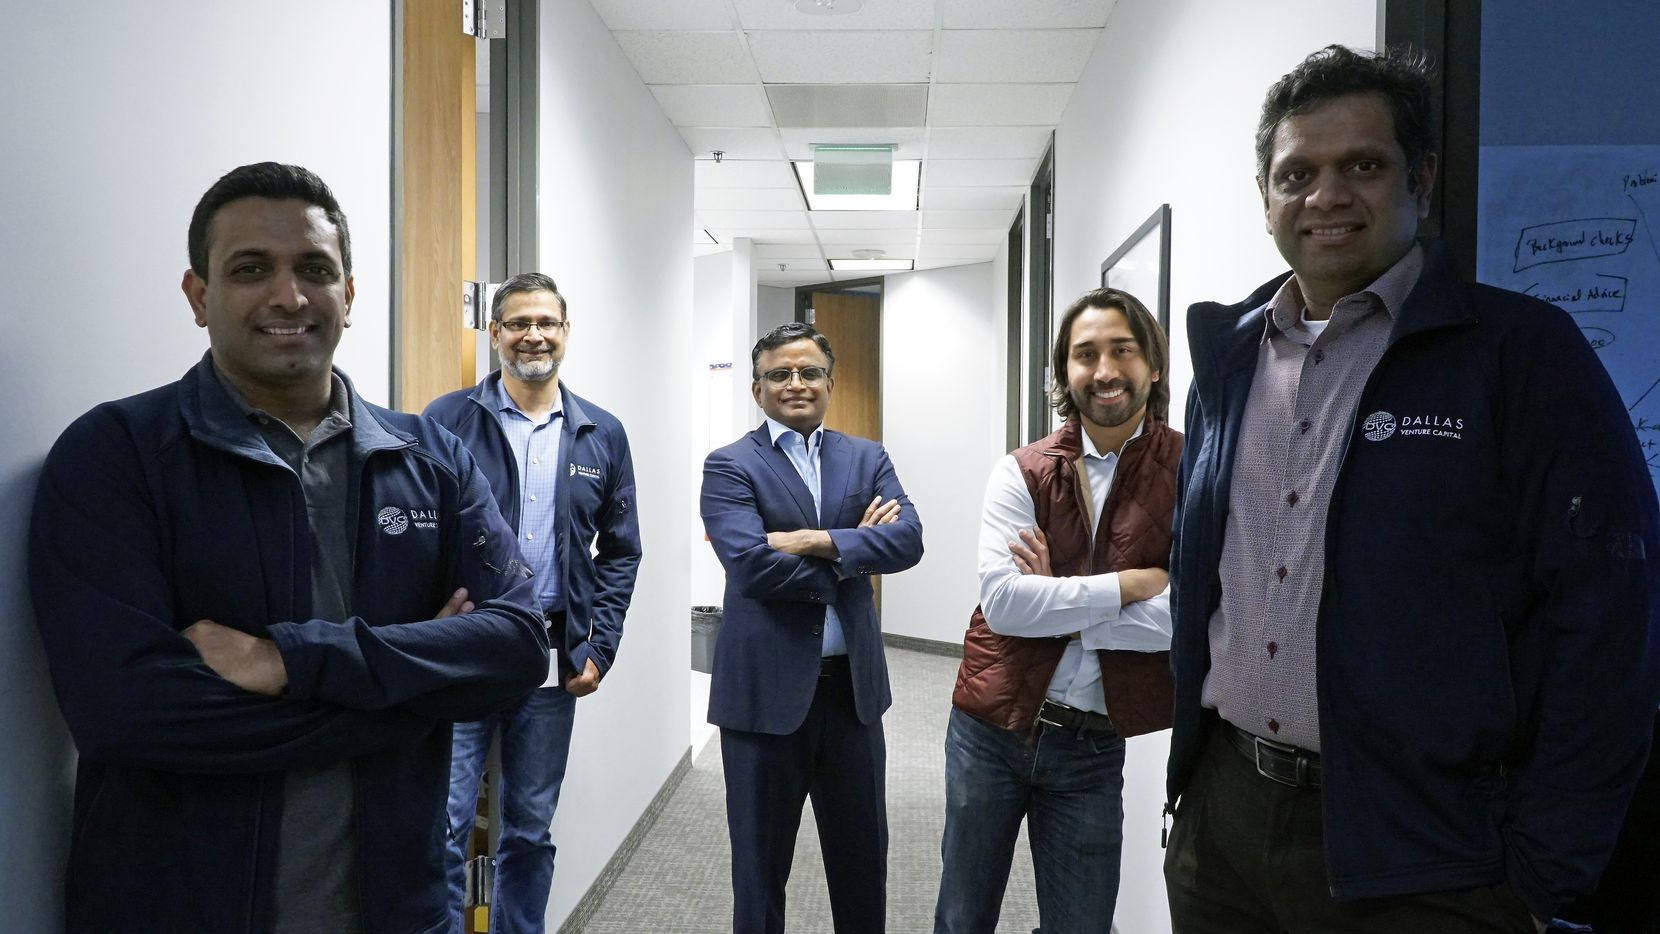 The Dallas Venture Capital team (left to right): Venkat Kolli, Abidali Neemuchwala, Dayakar Puskoor, Manu Sharma and Adhavan Manickam.